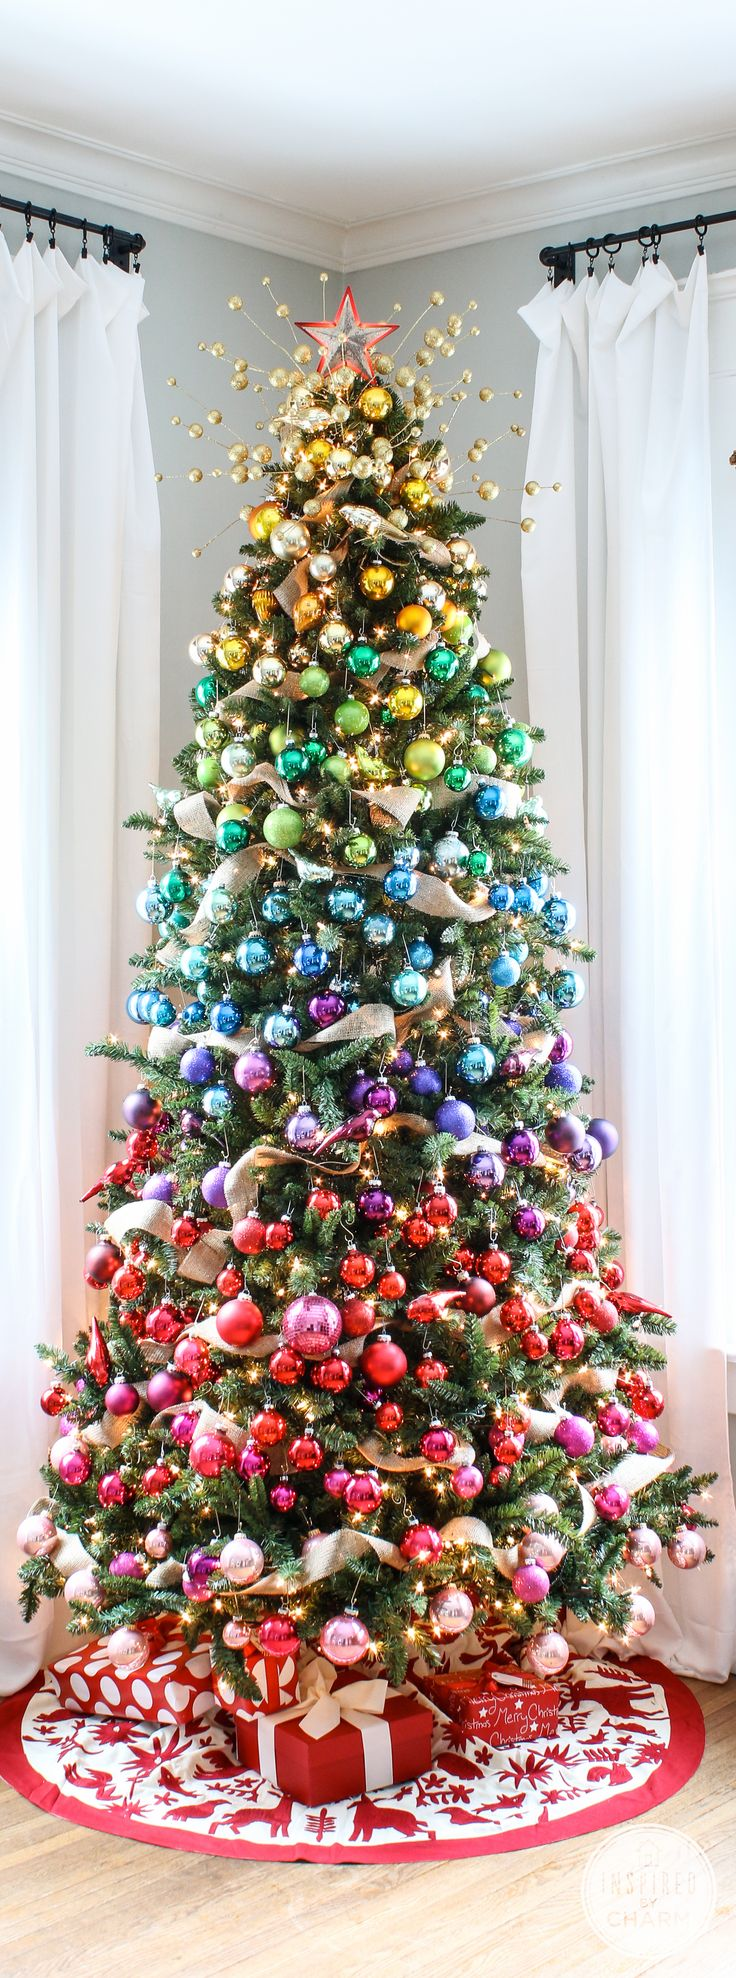 The Most Colorful Christmas Trees And Decorations You Have Ever Seen-homesthetics (2)